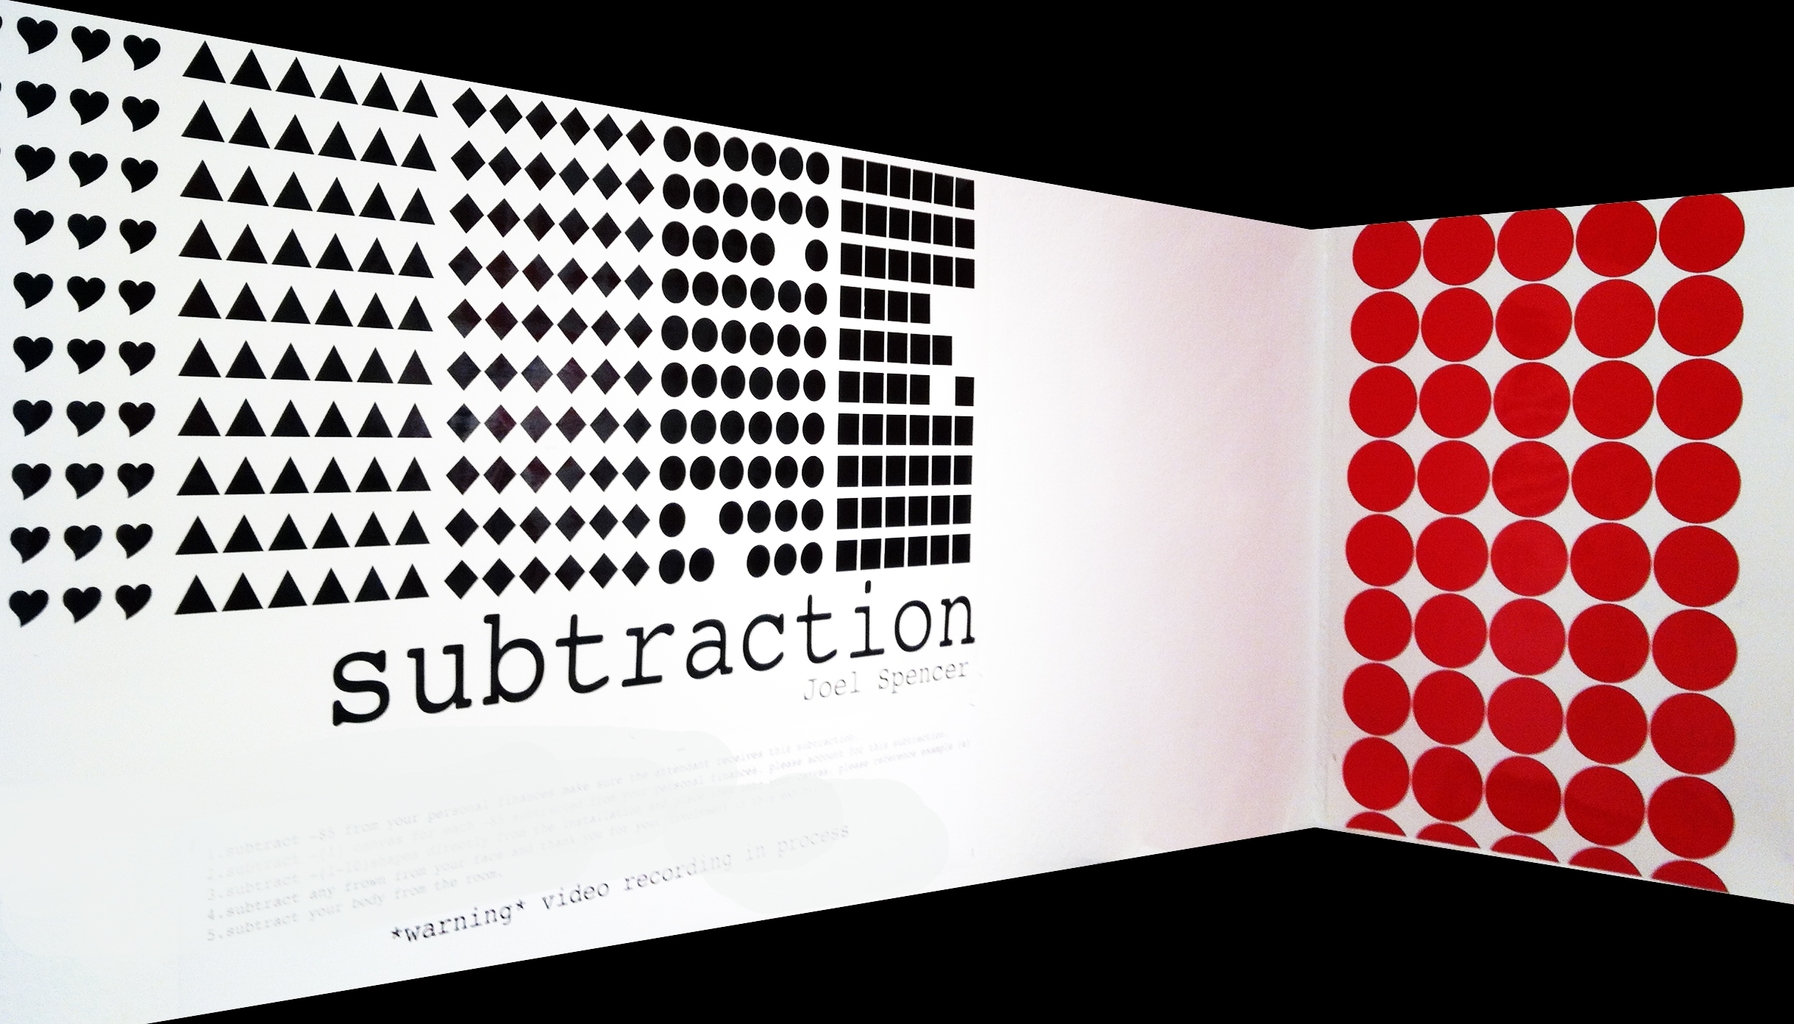 Subtraction teaser